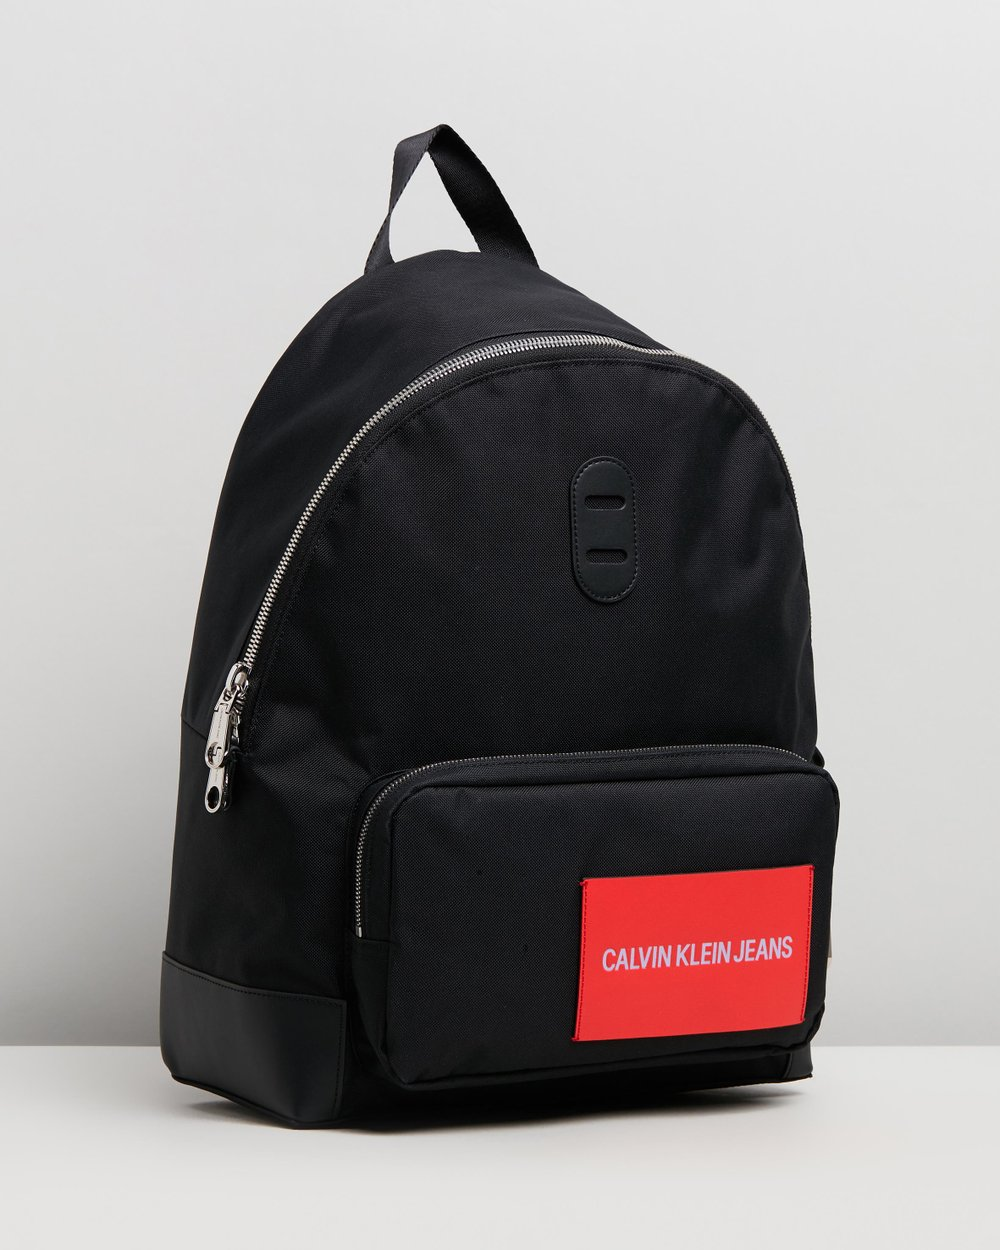 5f4c29c83ea Sport Essential Backpack by Calvin Klein Jeans Online | THE ICONIC |  Australia